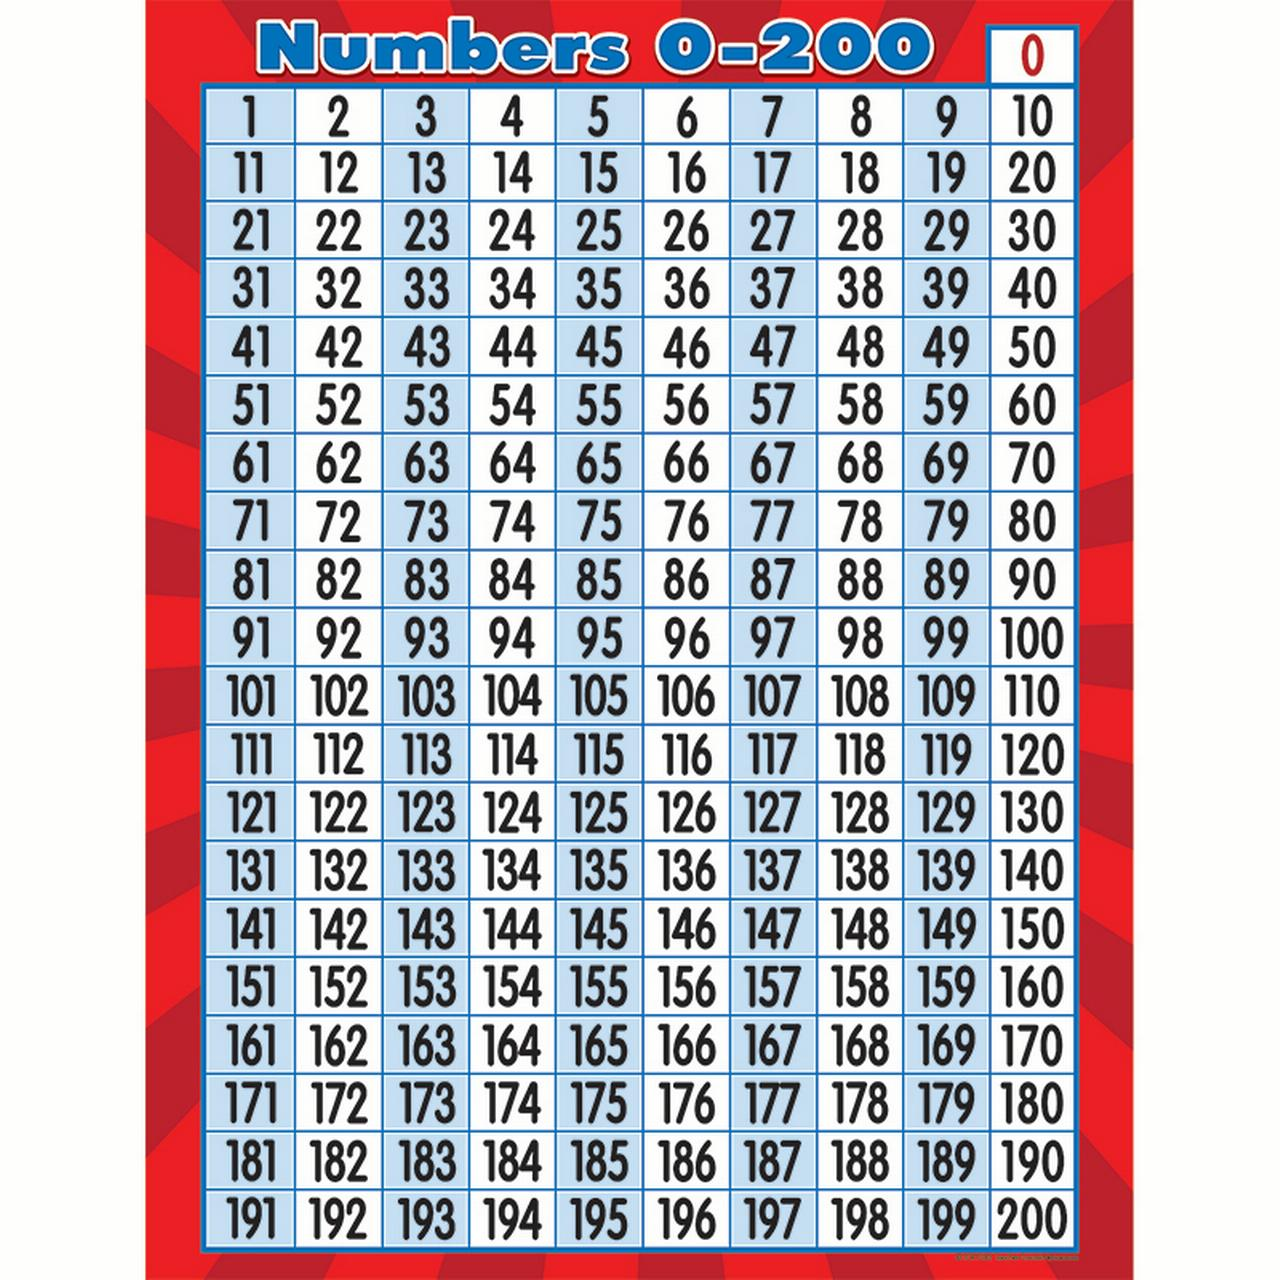 NUMBERS 0 TO 200 CHART